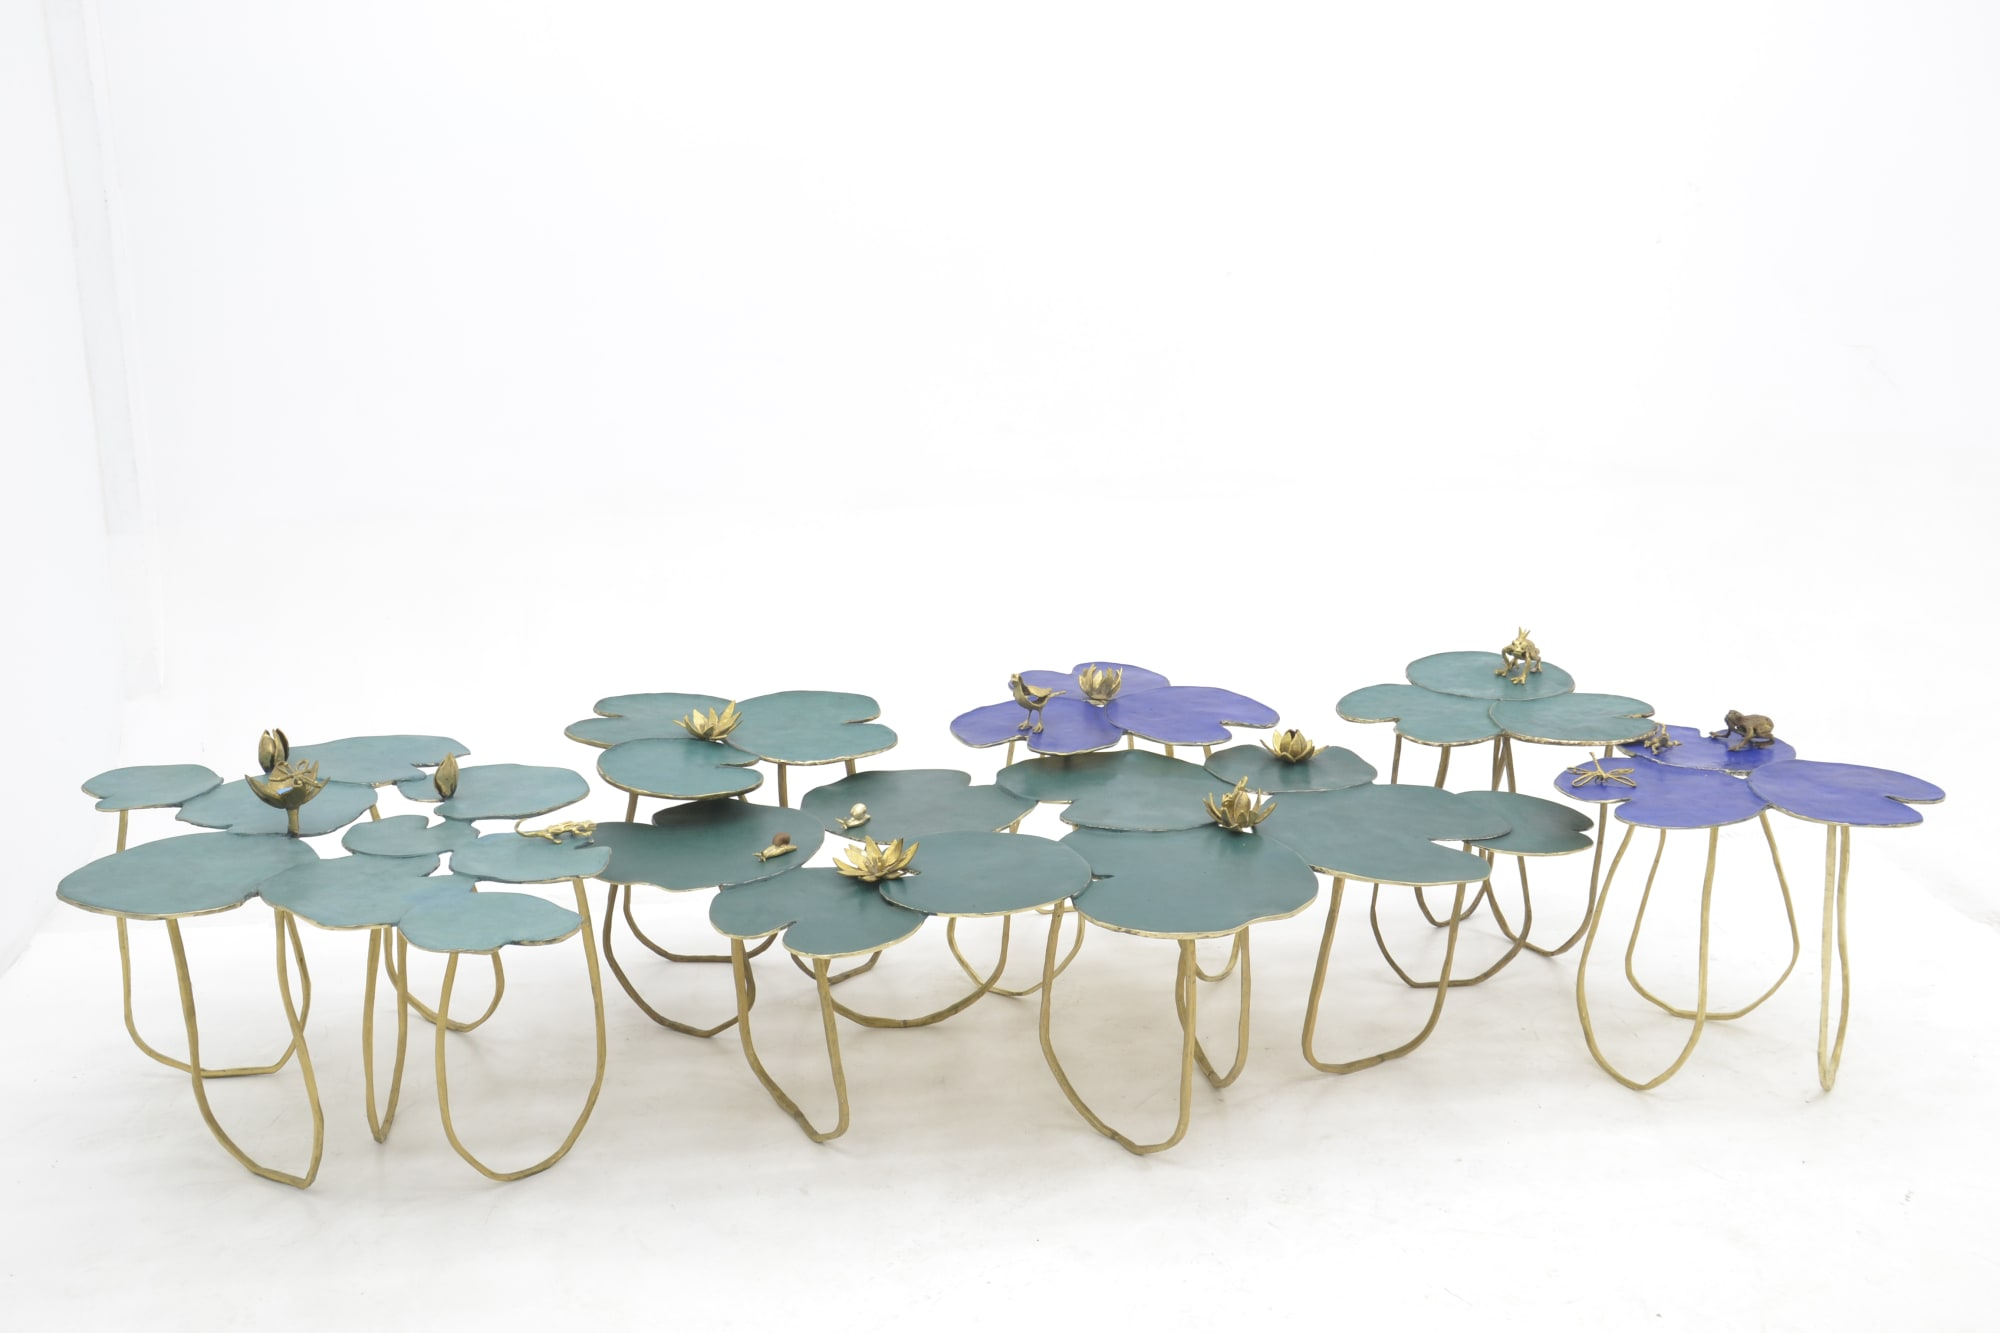 Sculptural Metal Waterlily Table